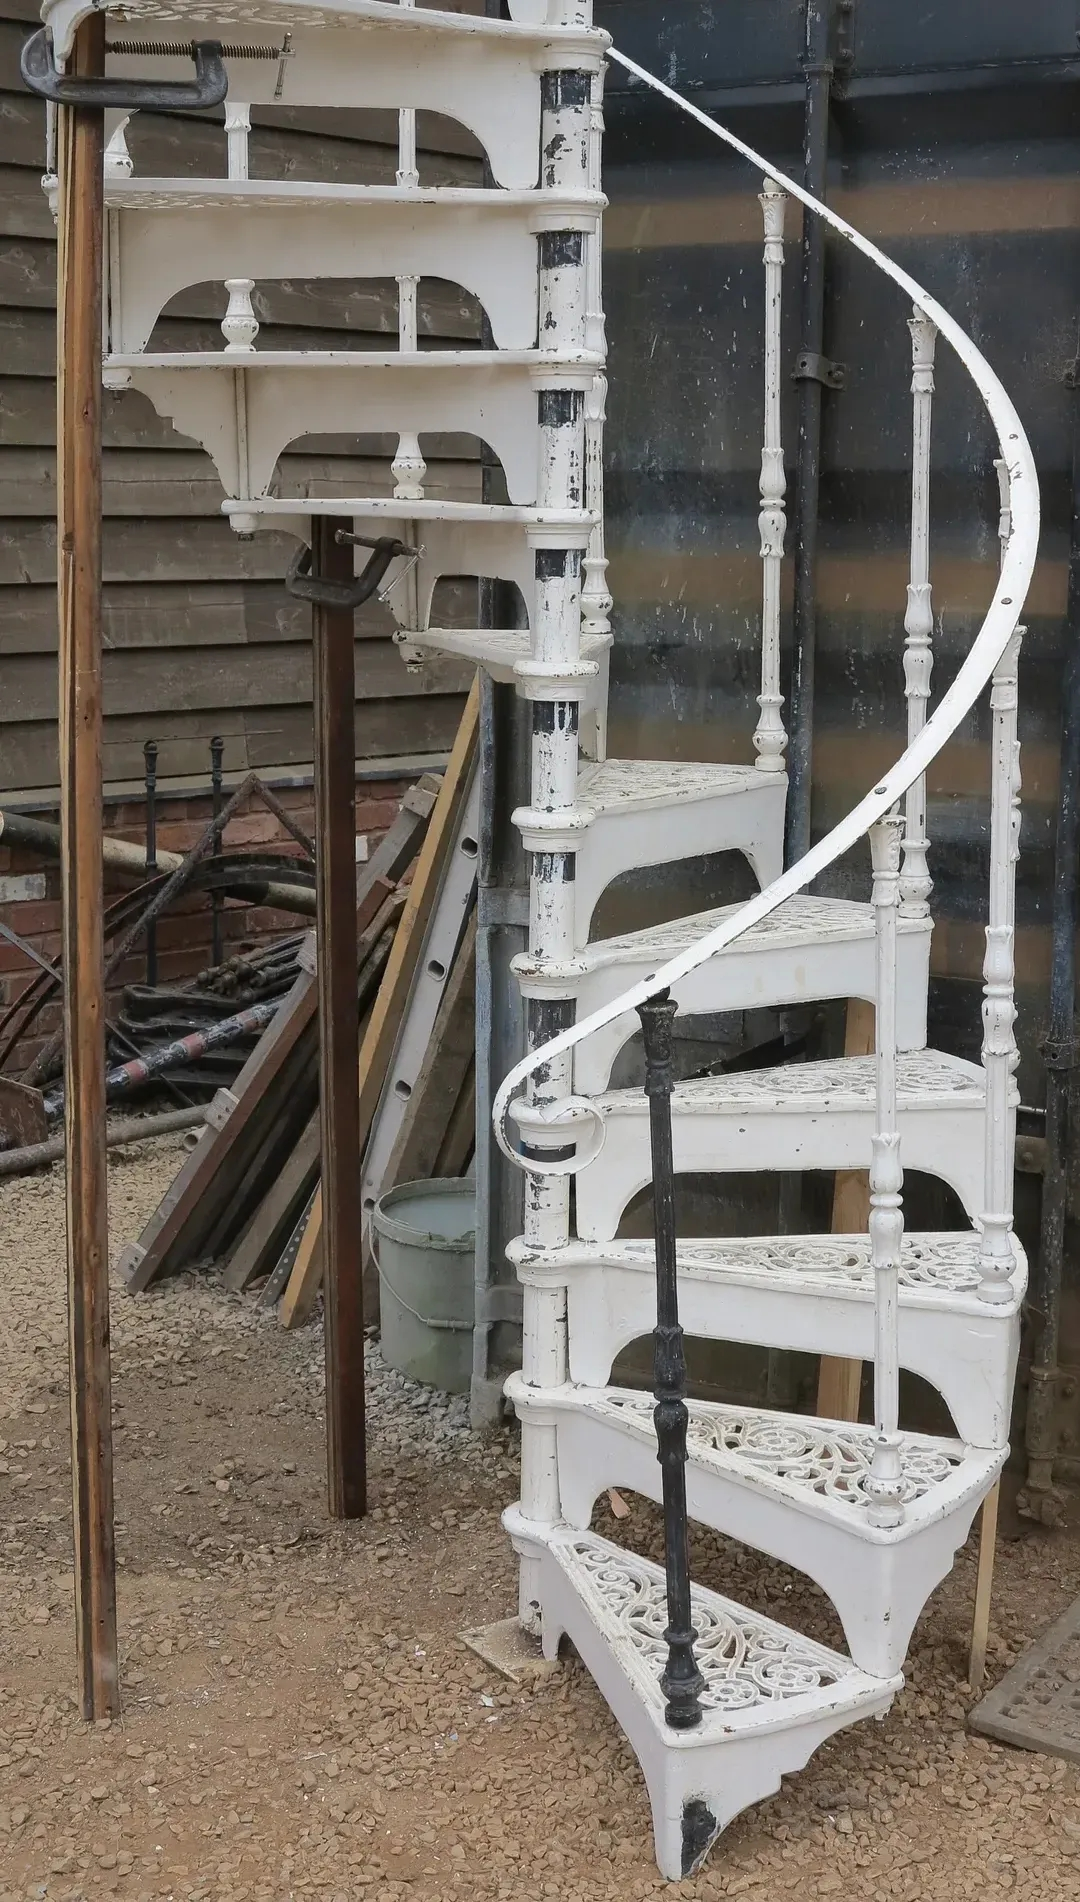 Reclaimed White Cast Iron Spiral Staircase Kits | Spiral Staircase For Sale